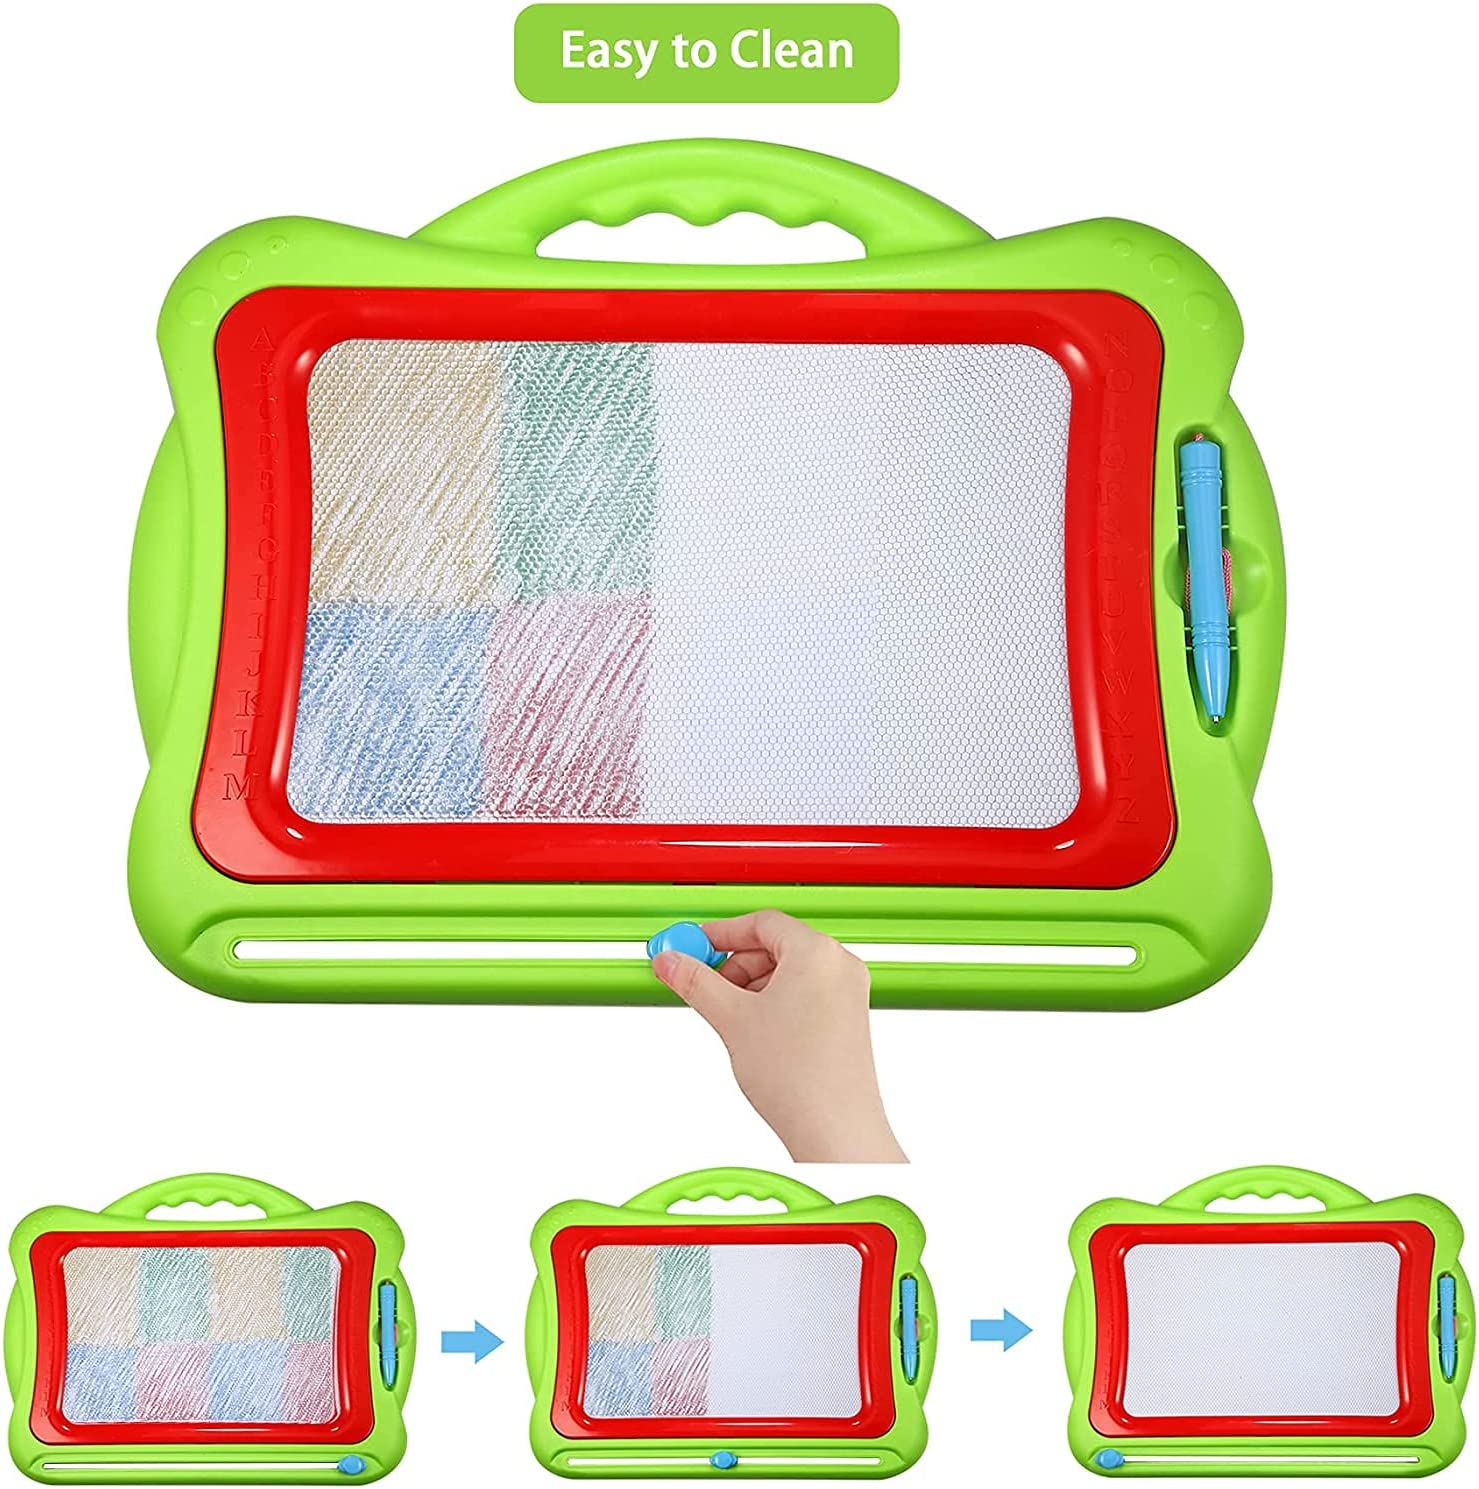 Green Magnetic Drawing Board for Toddlers Large Erasable Doodle Board Writing Painting Sketch Pad Creative Educational Toys for Kids Boys /& Girls